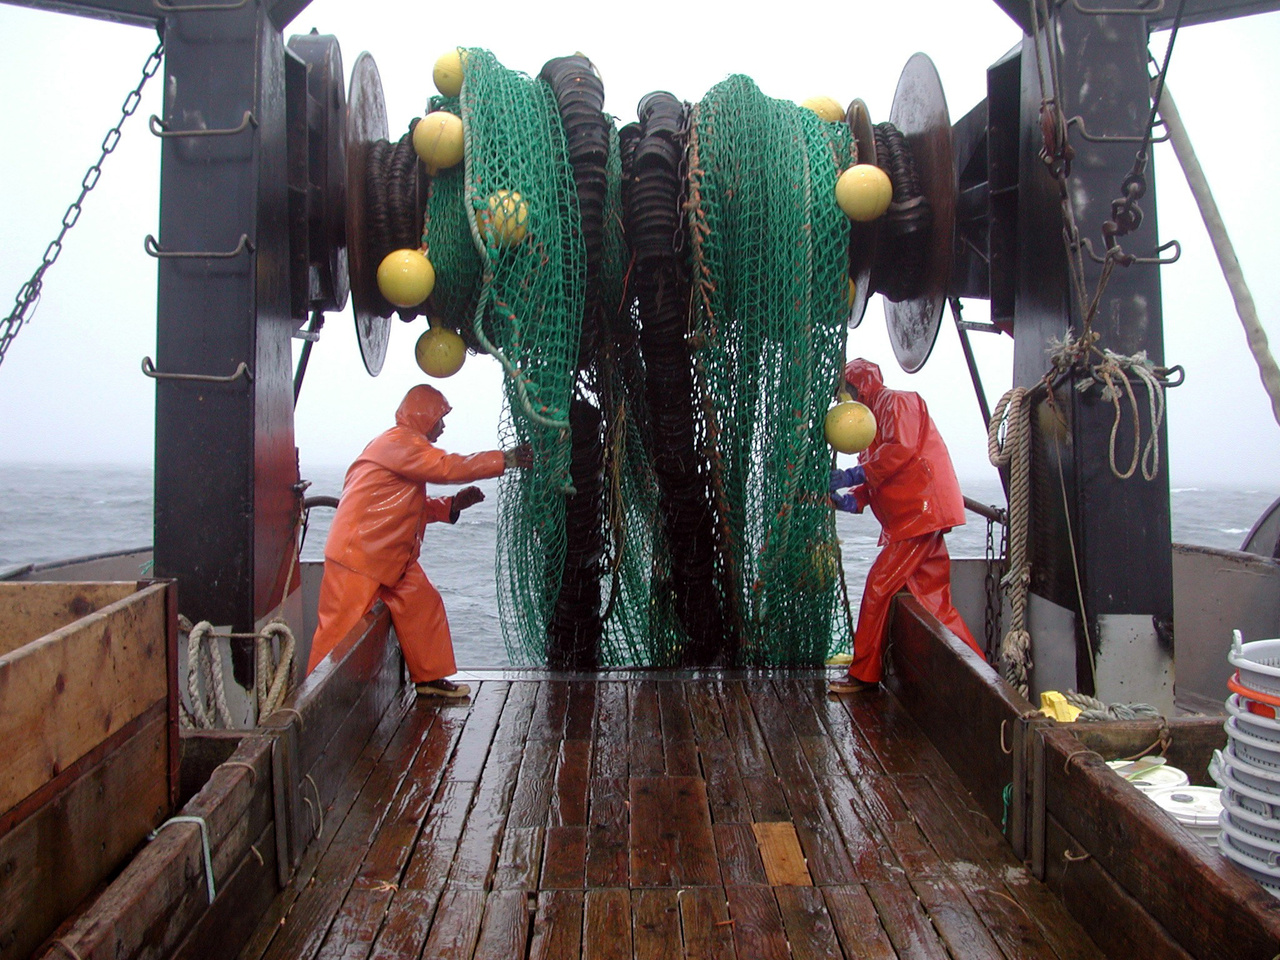 Two scientists pulling up net from net reel.jpg